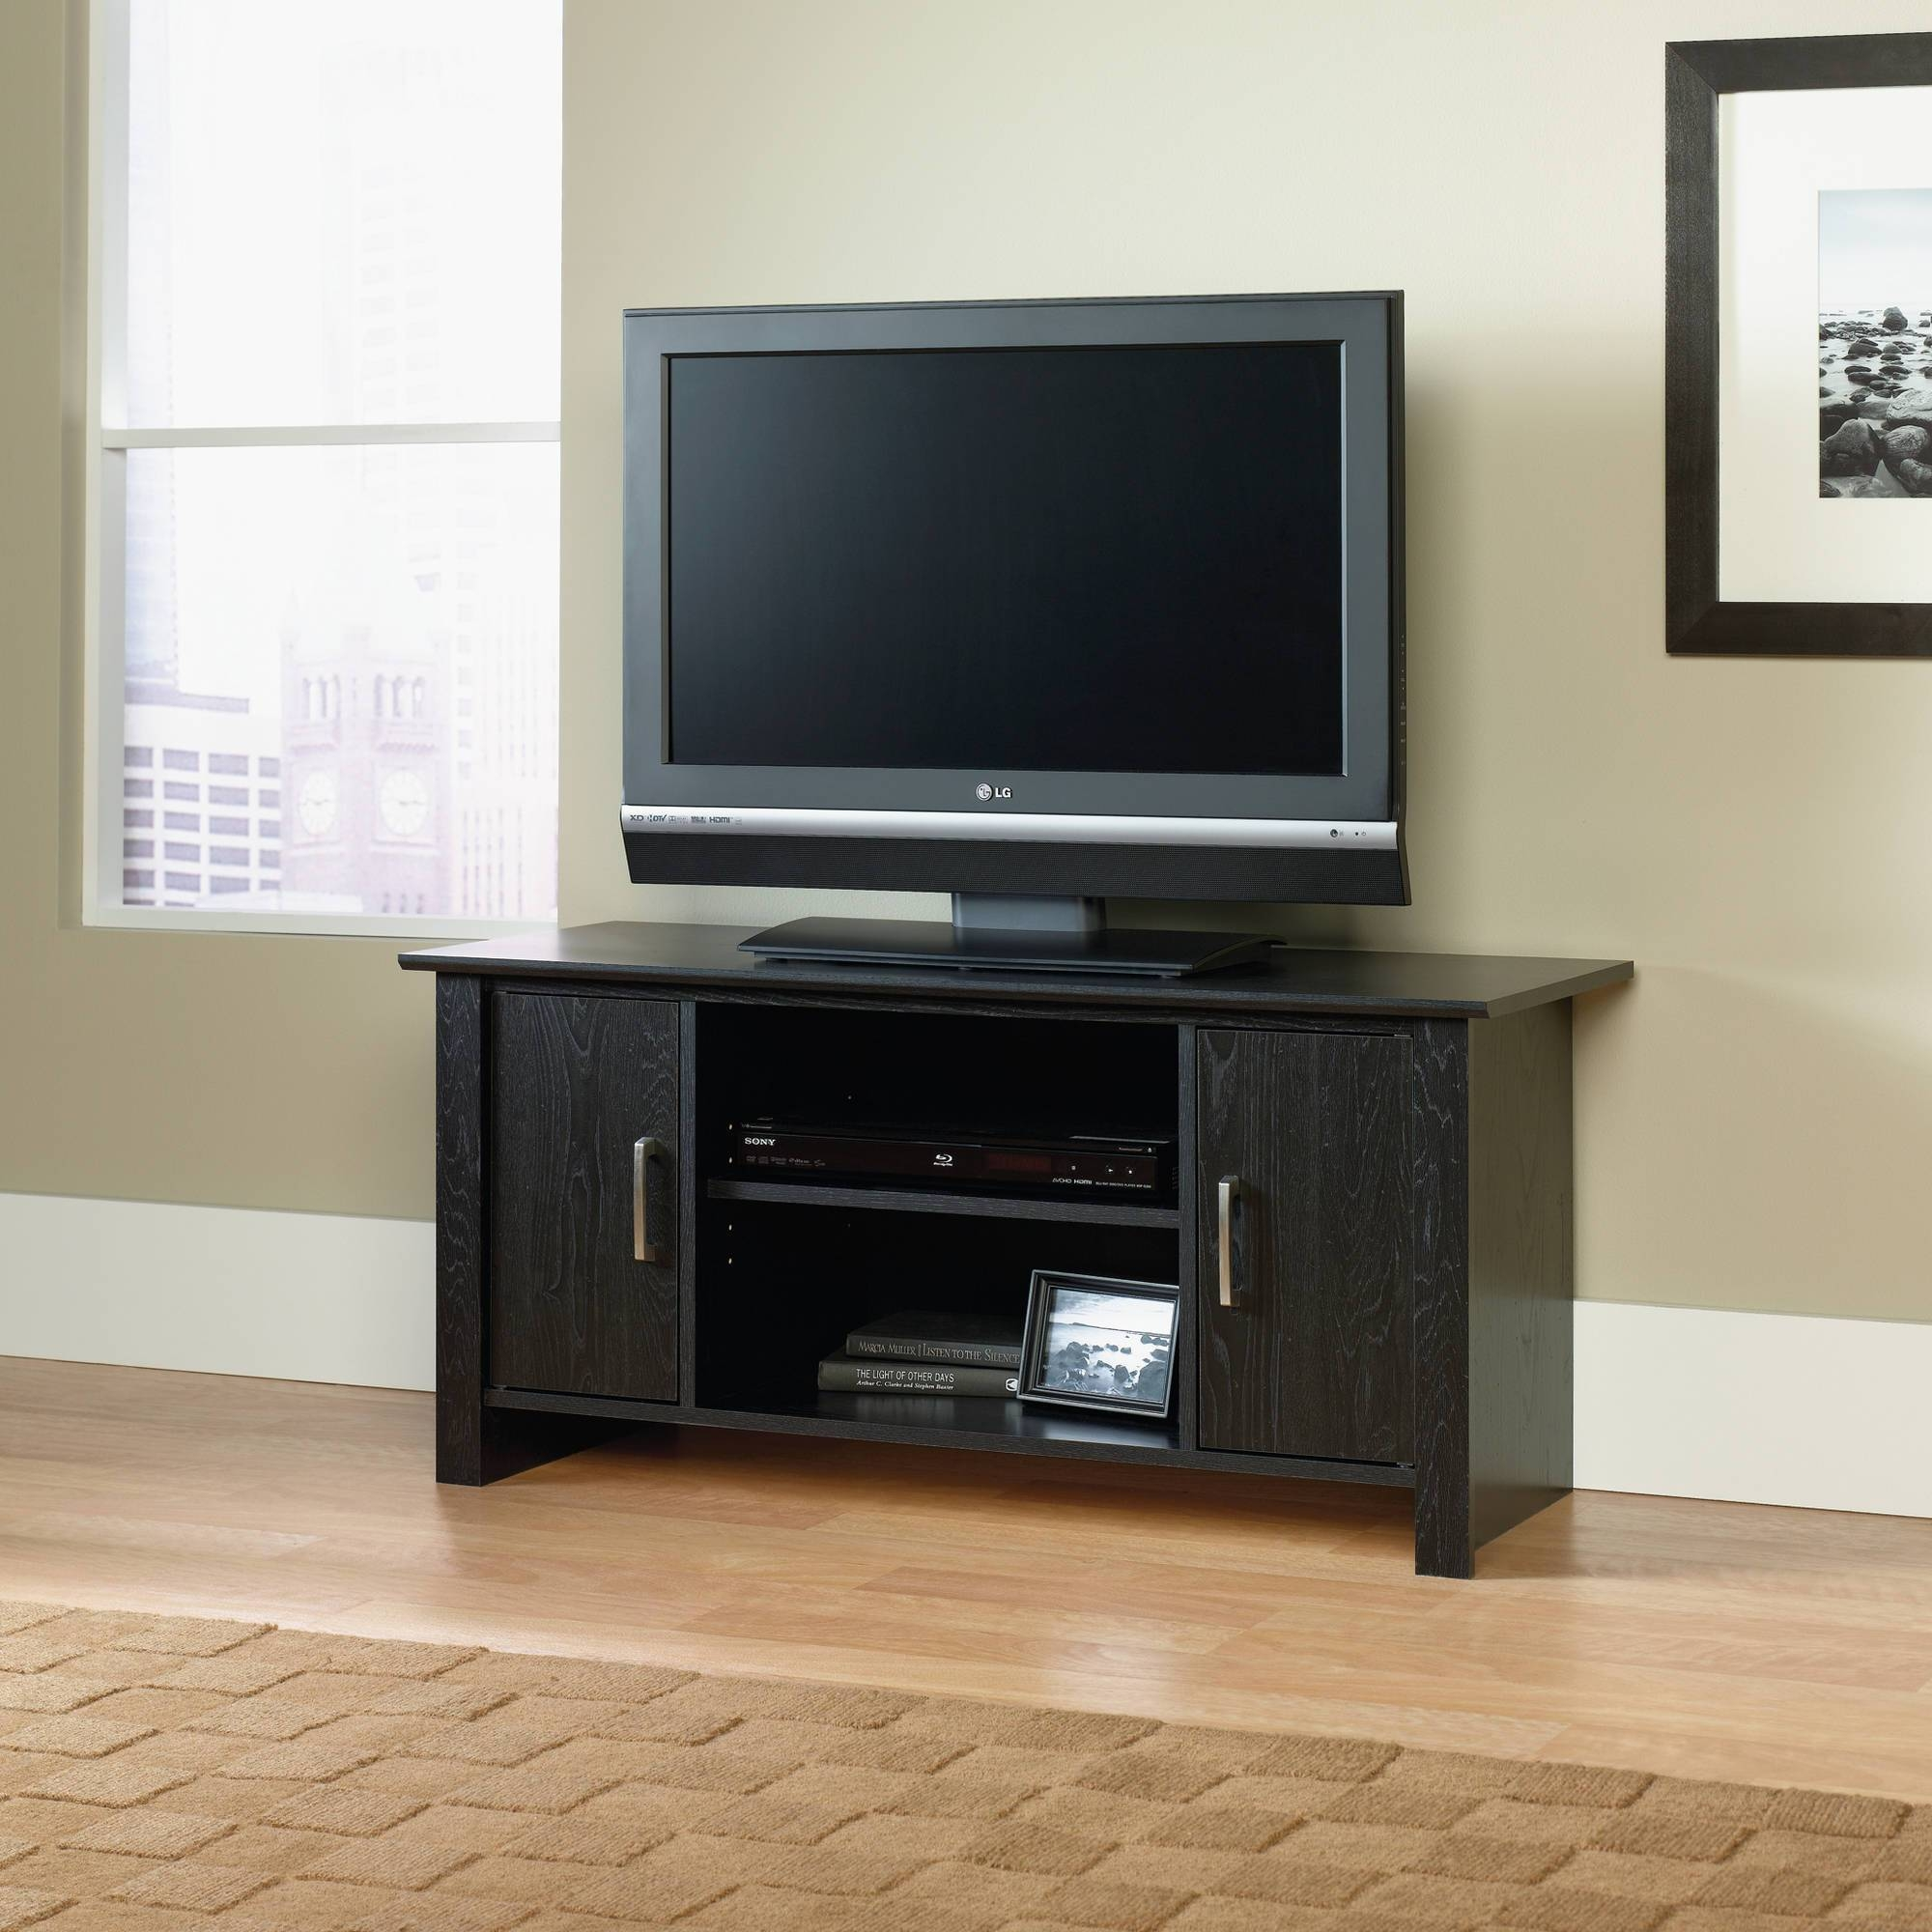 Tv Stands & Entertainment Centers - Walmart throughout Oak Tv Stands For Flat Screens (Image 14 of 15)